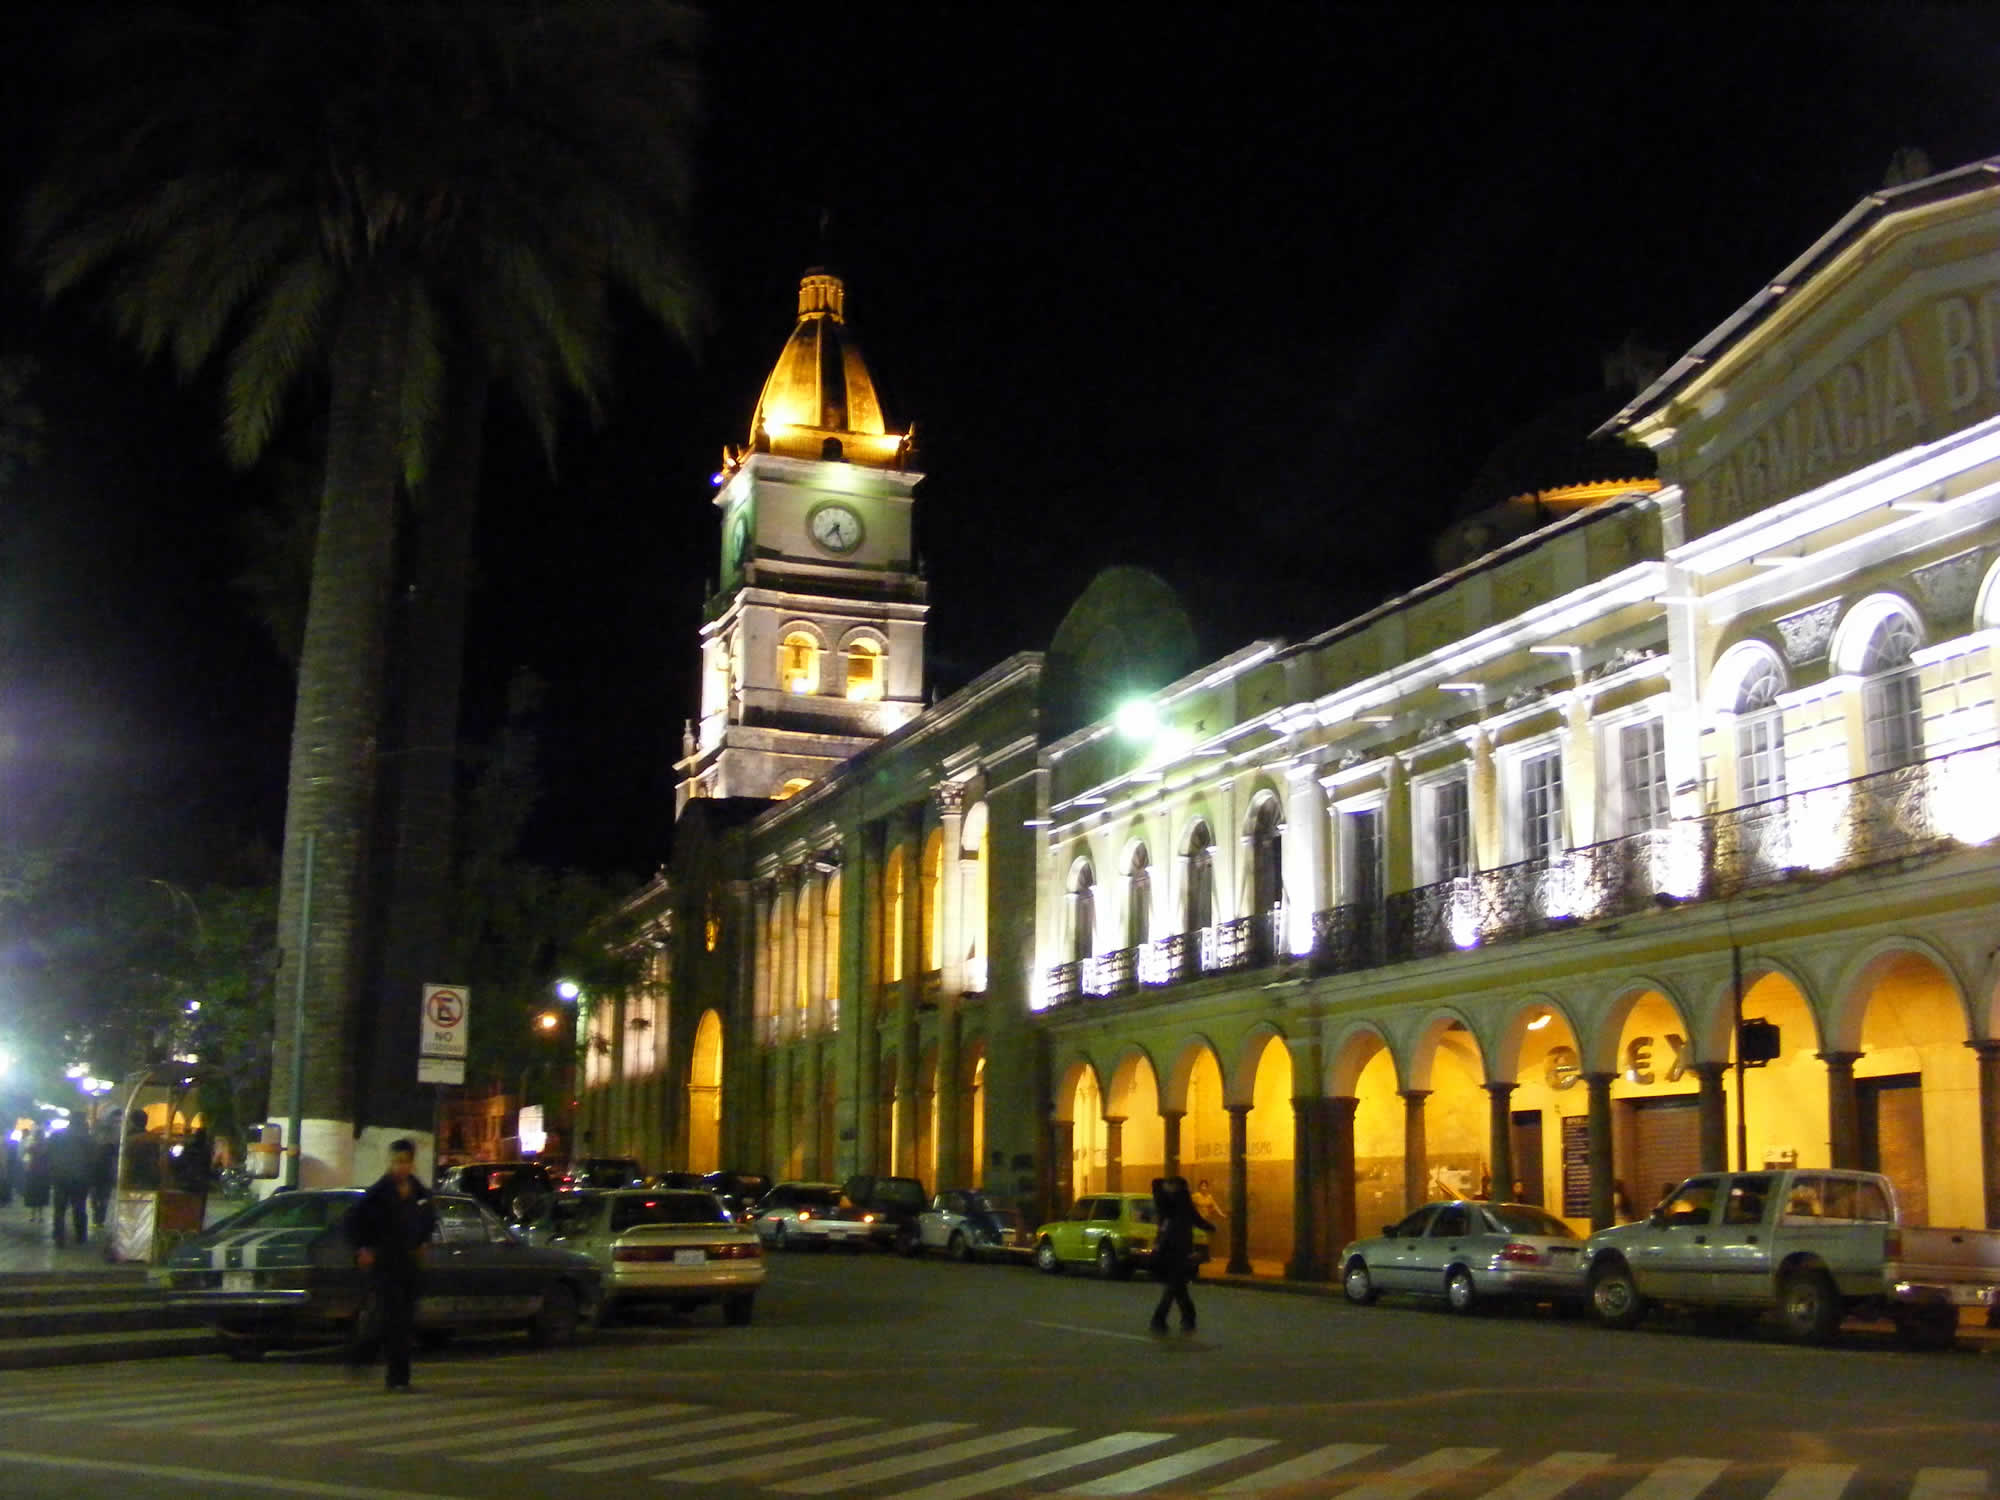 Cathedral of Cochabamba, Cochabamba